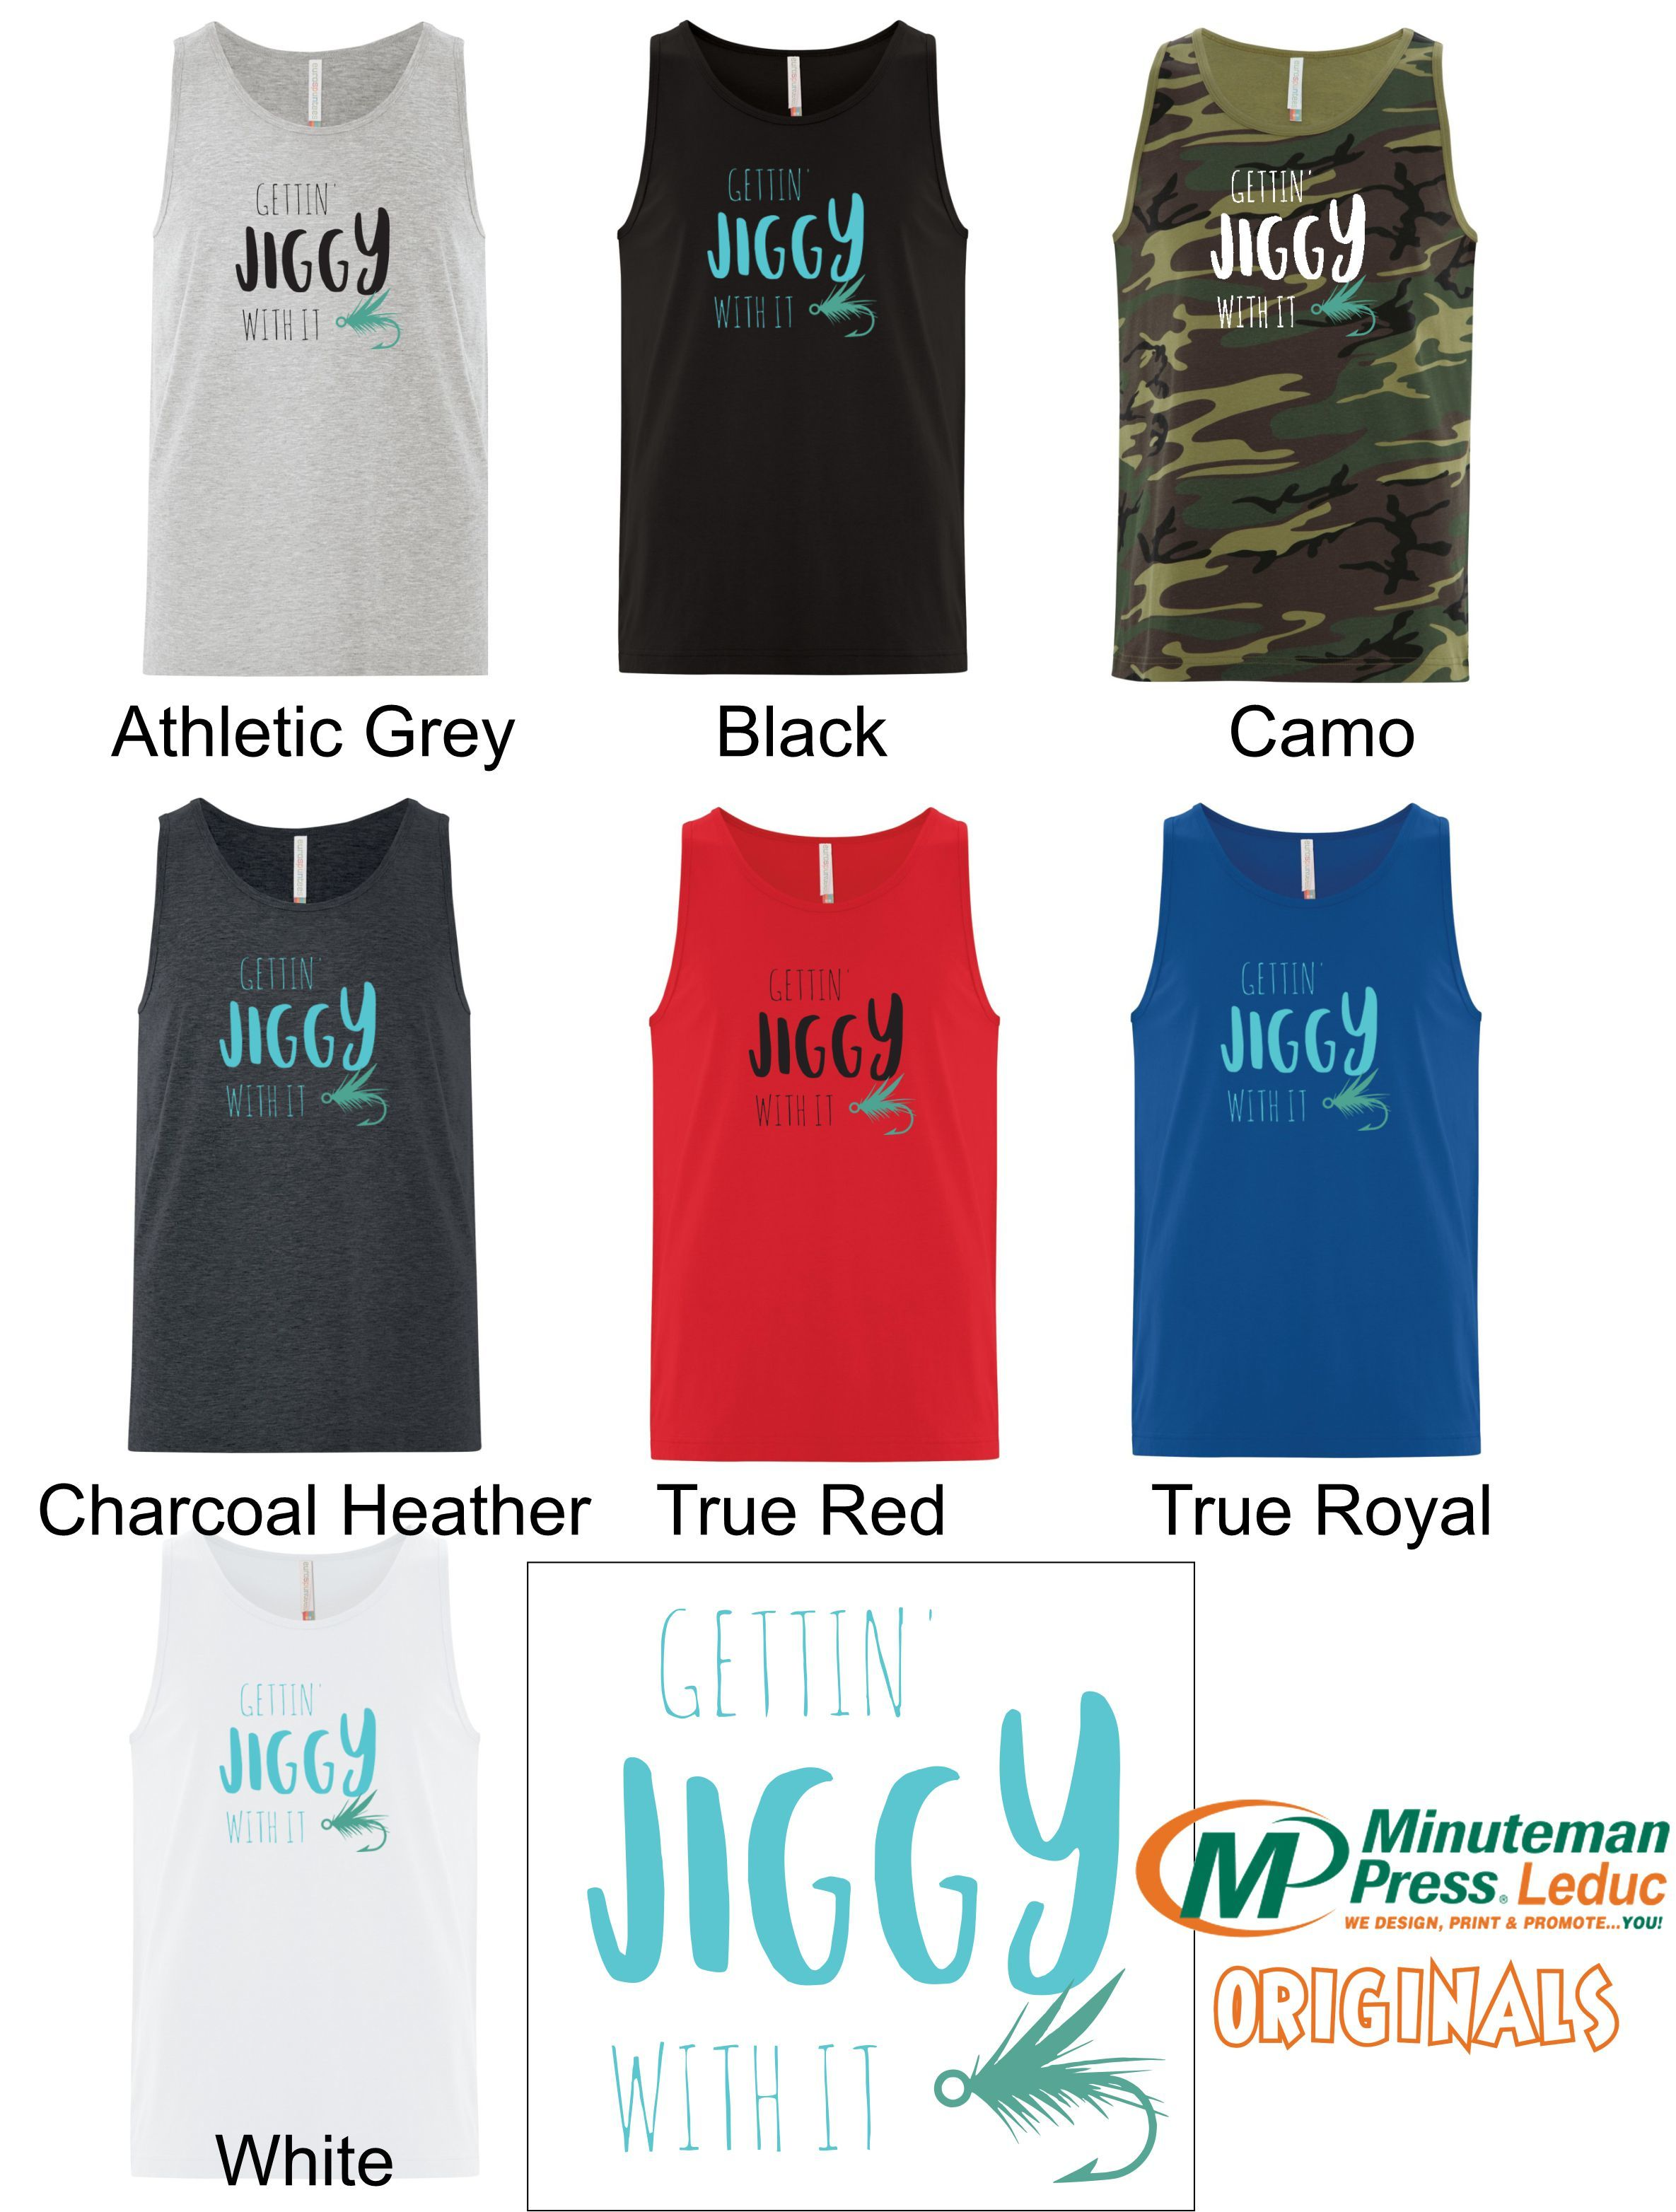 Getting Jiggy with it - Mens Tank